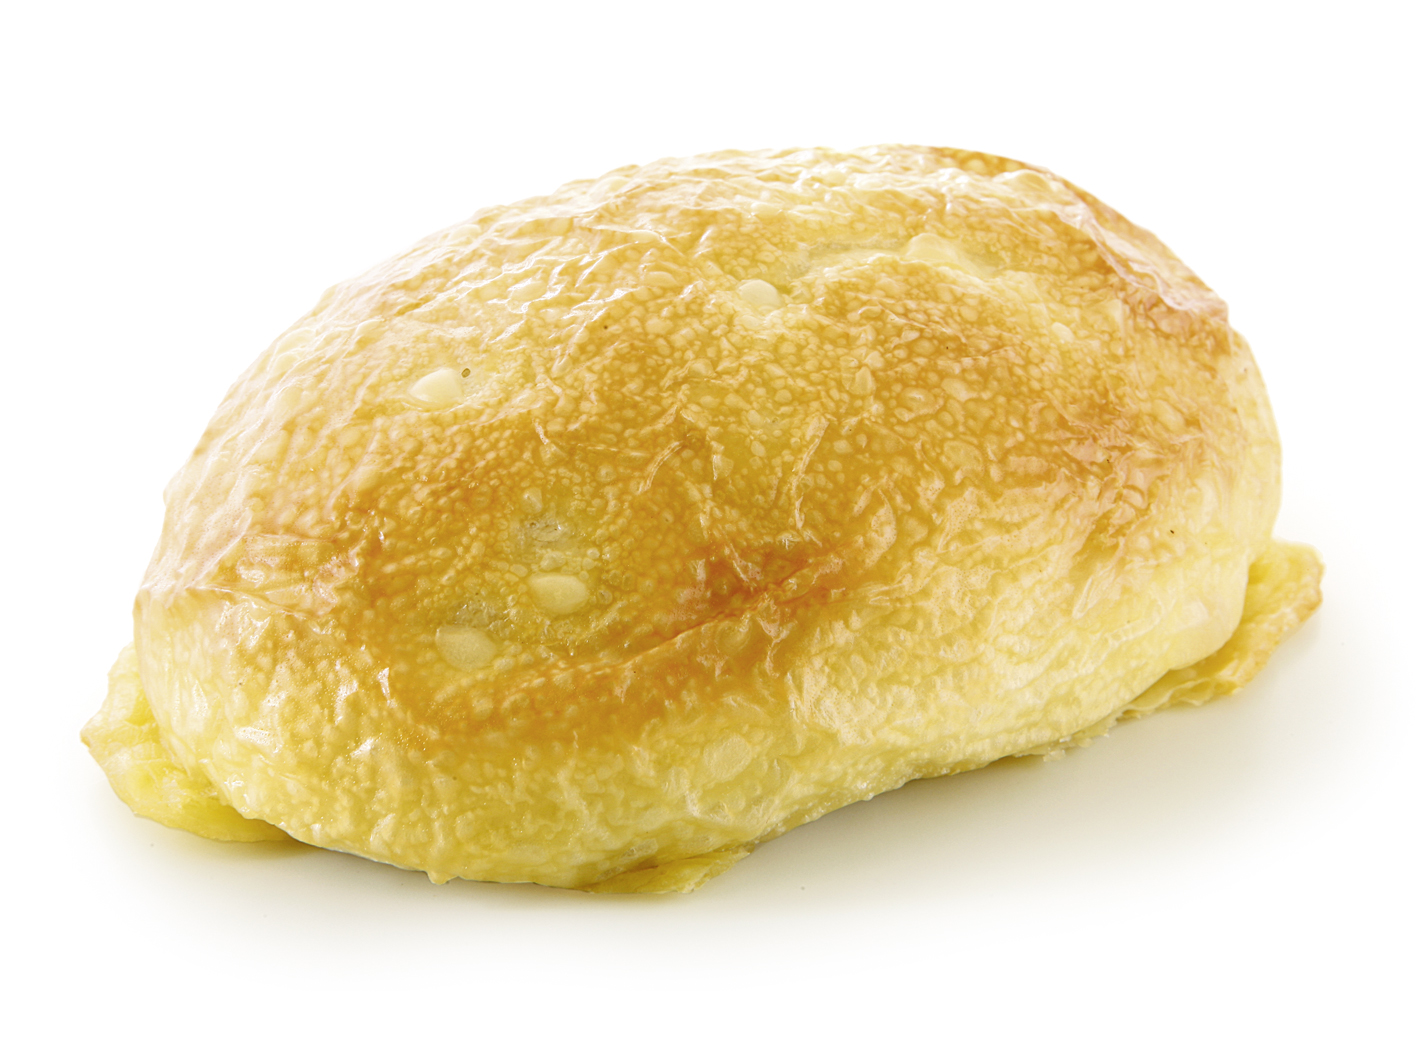 Wheat roll with cheese - Yeast pastry baked with 22% gouda cheese/ thaw only